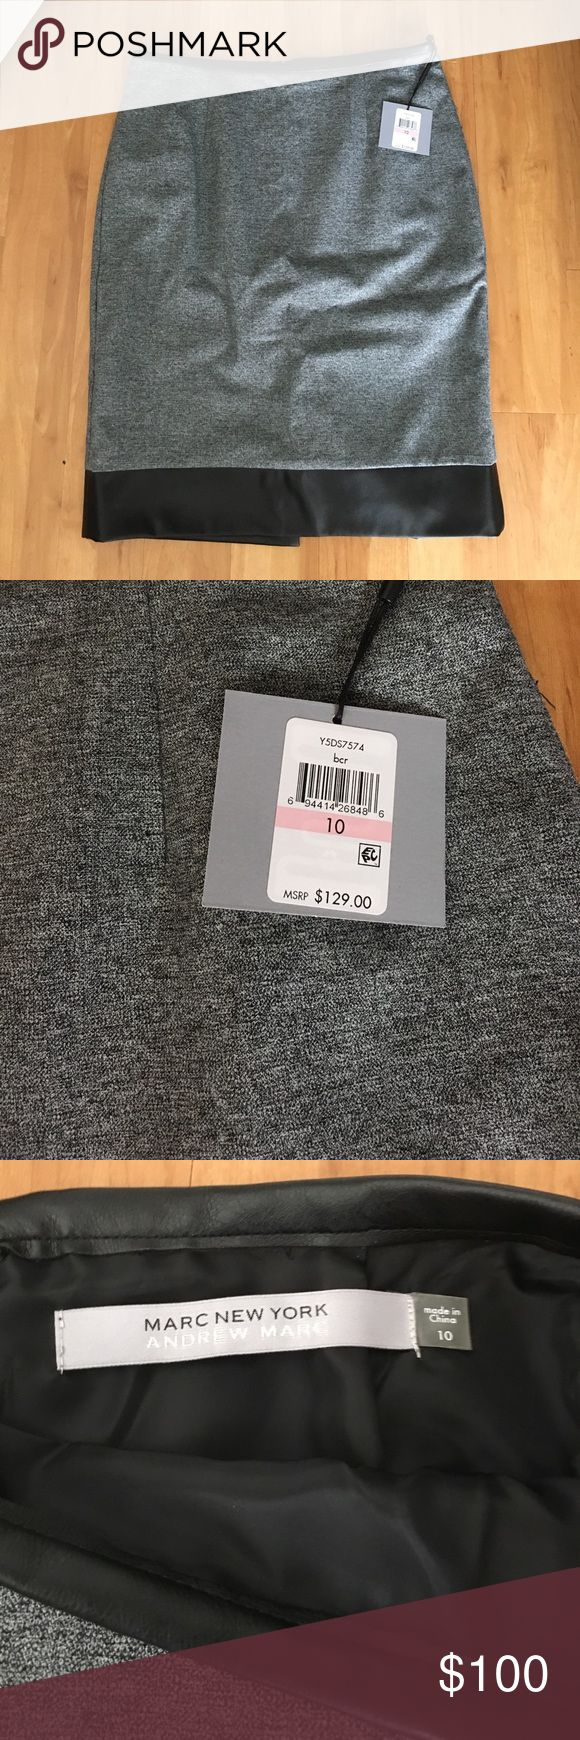 Marc New York Andrew Marc faux leather gray skirt Brand new with tags $129 retail - faux leather trim - soft smooth gray color lined and zip back size 10 Andrew Marc Skirts Pencil